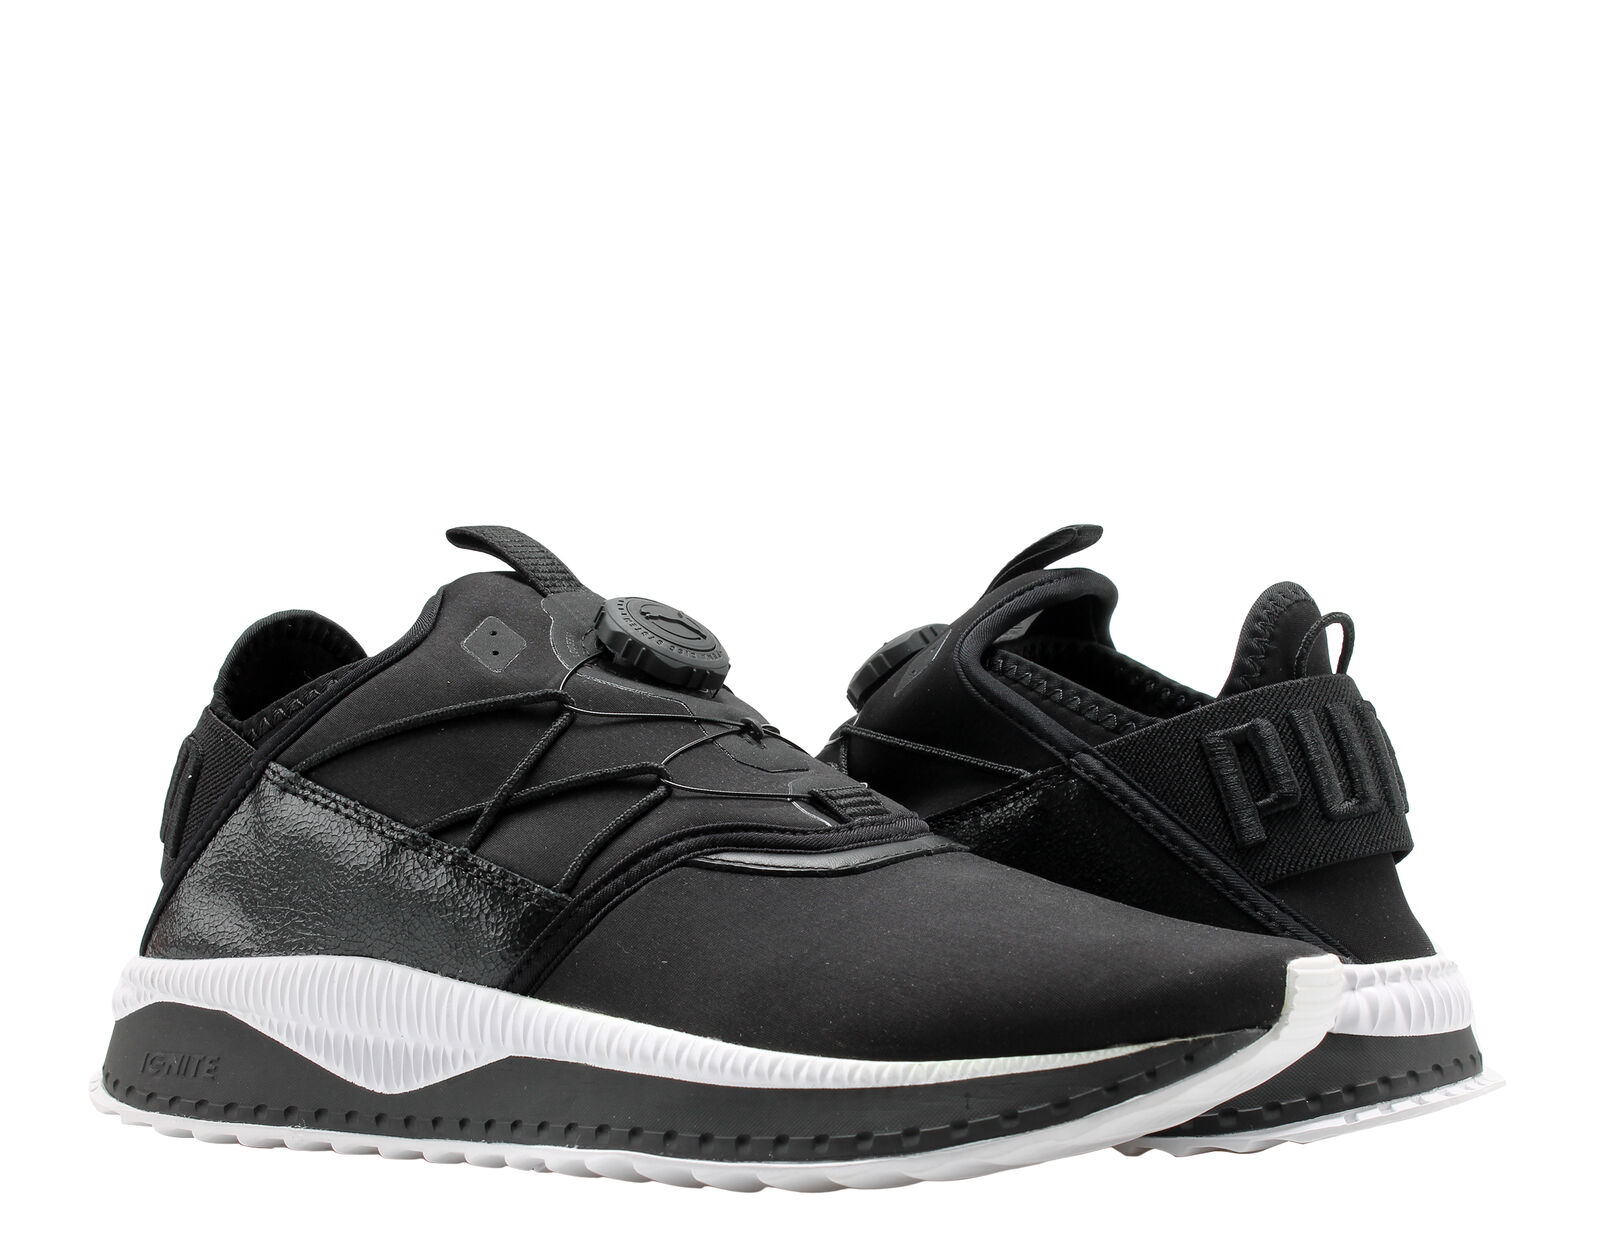 Puma TSUGI Disc Monolith Puma Black-Puma White Men's Running Shoes 36550101